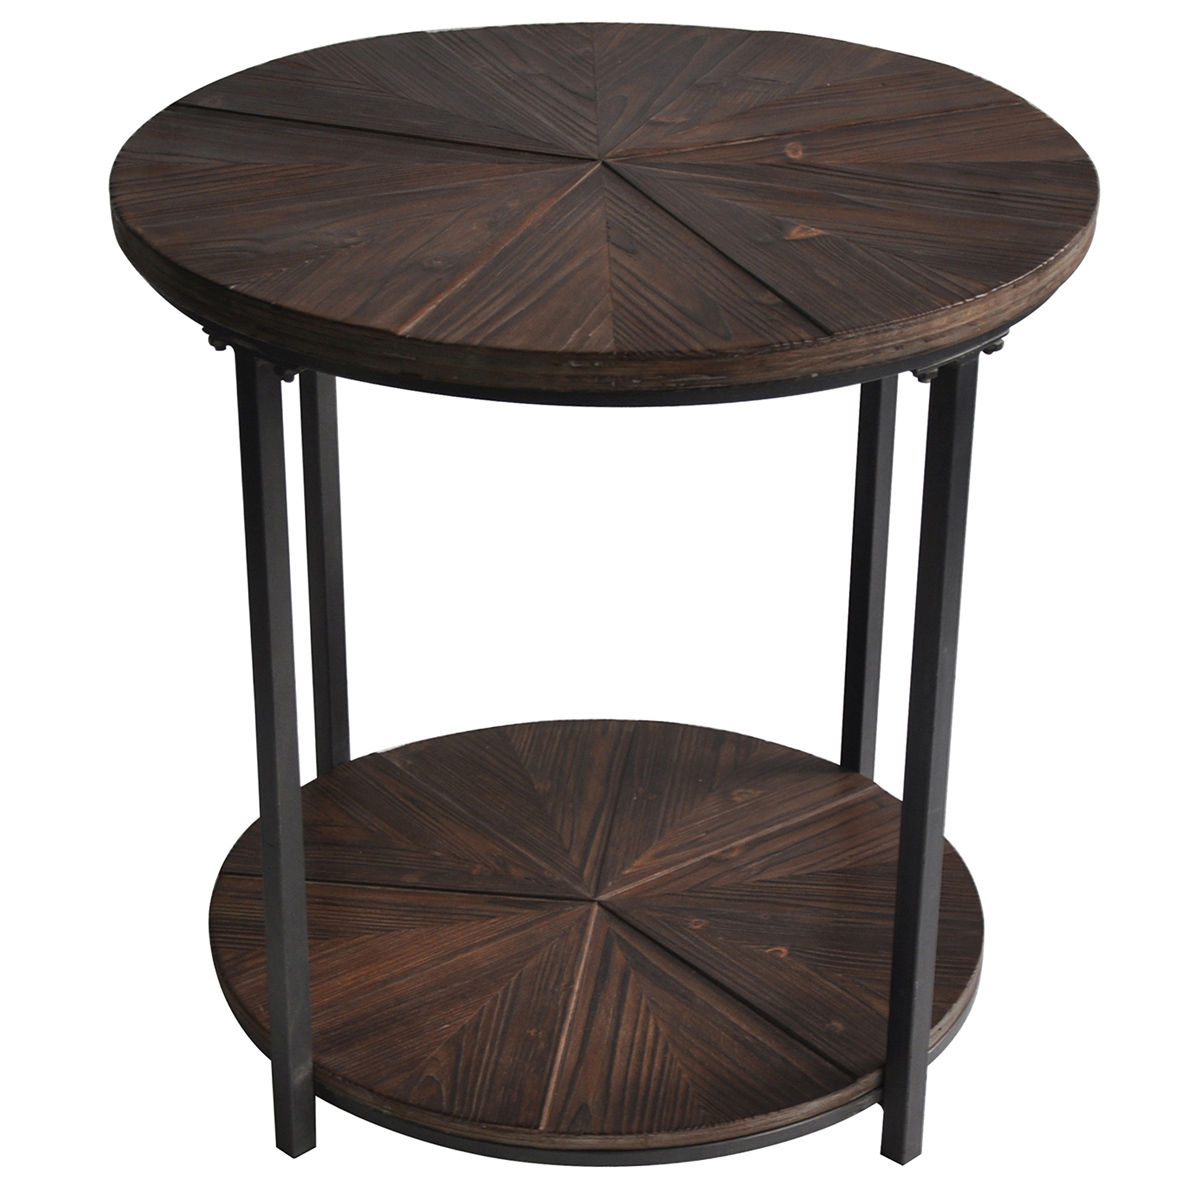 jackson round metal and rustic wood end table pedestal lamp small accent tables under sofa pottery barn desk outdoor farmhouse ashley home furniture clearance center shoe living